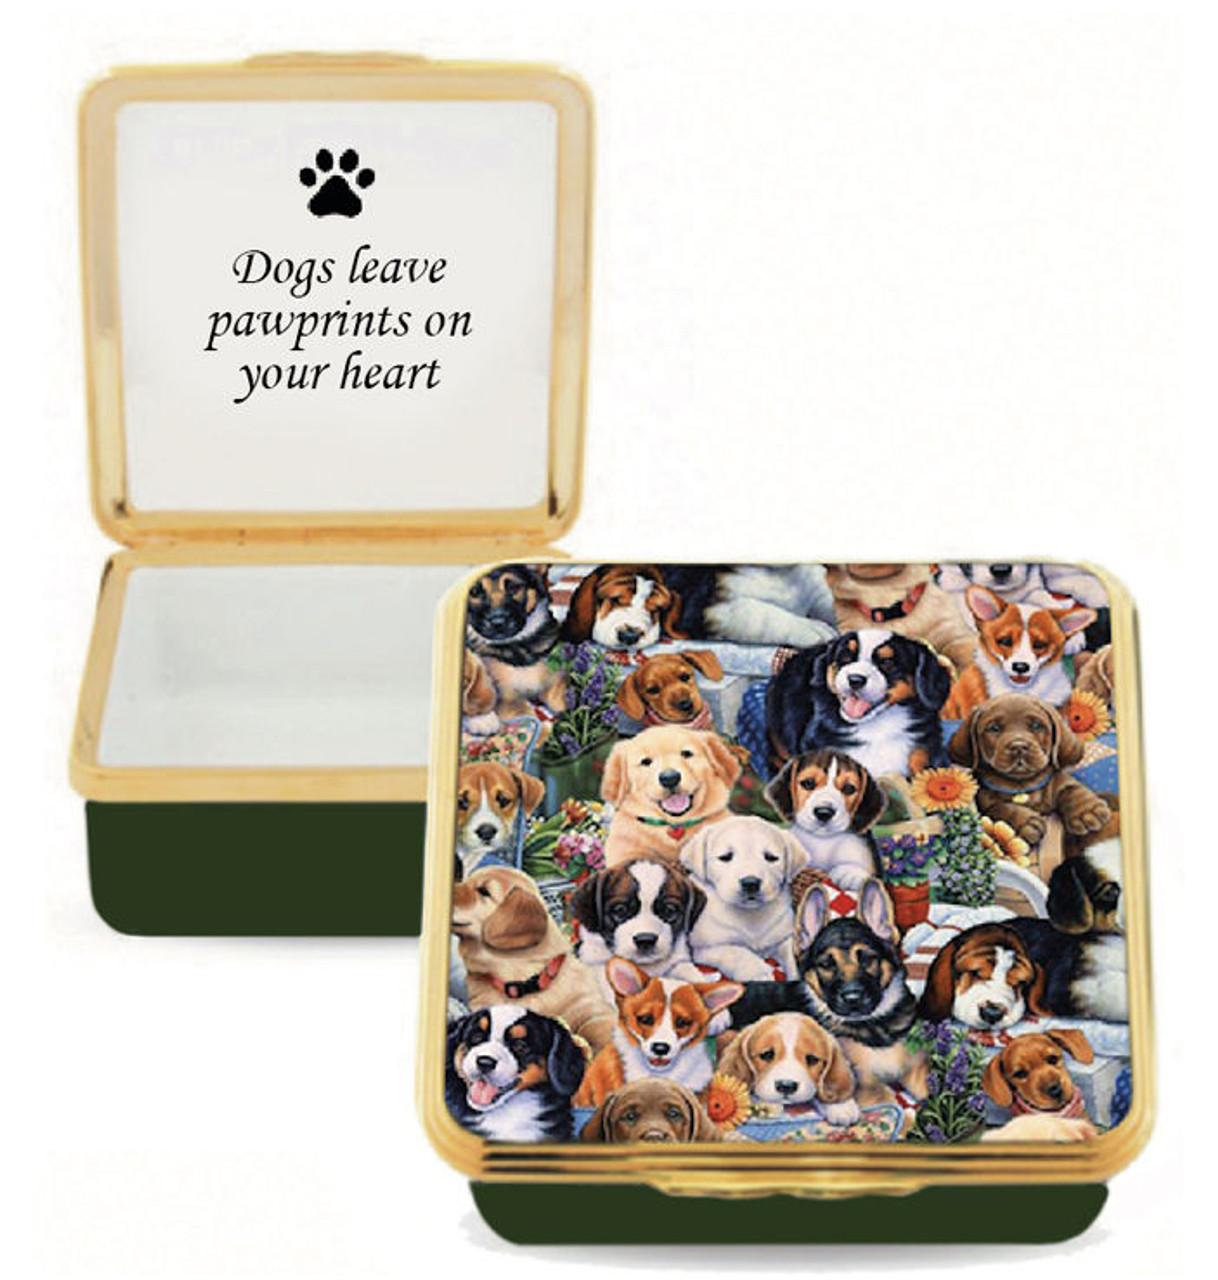 Halcyon Days Dogs Leave Pawprints On Your Heart (ENDPP1258G)